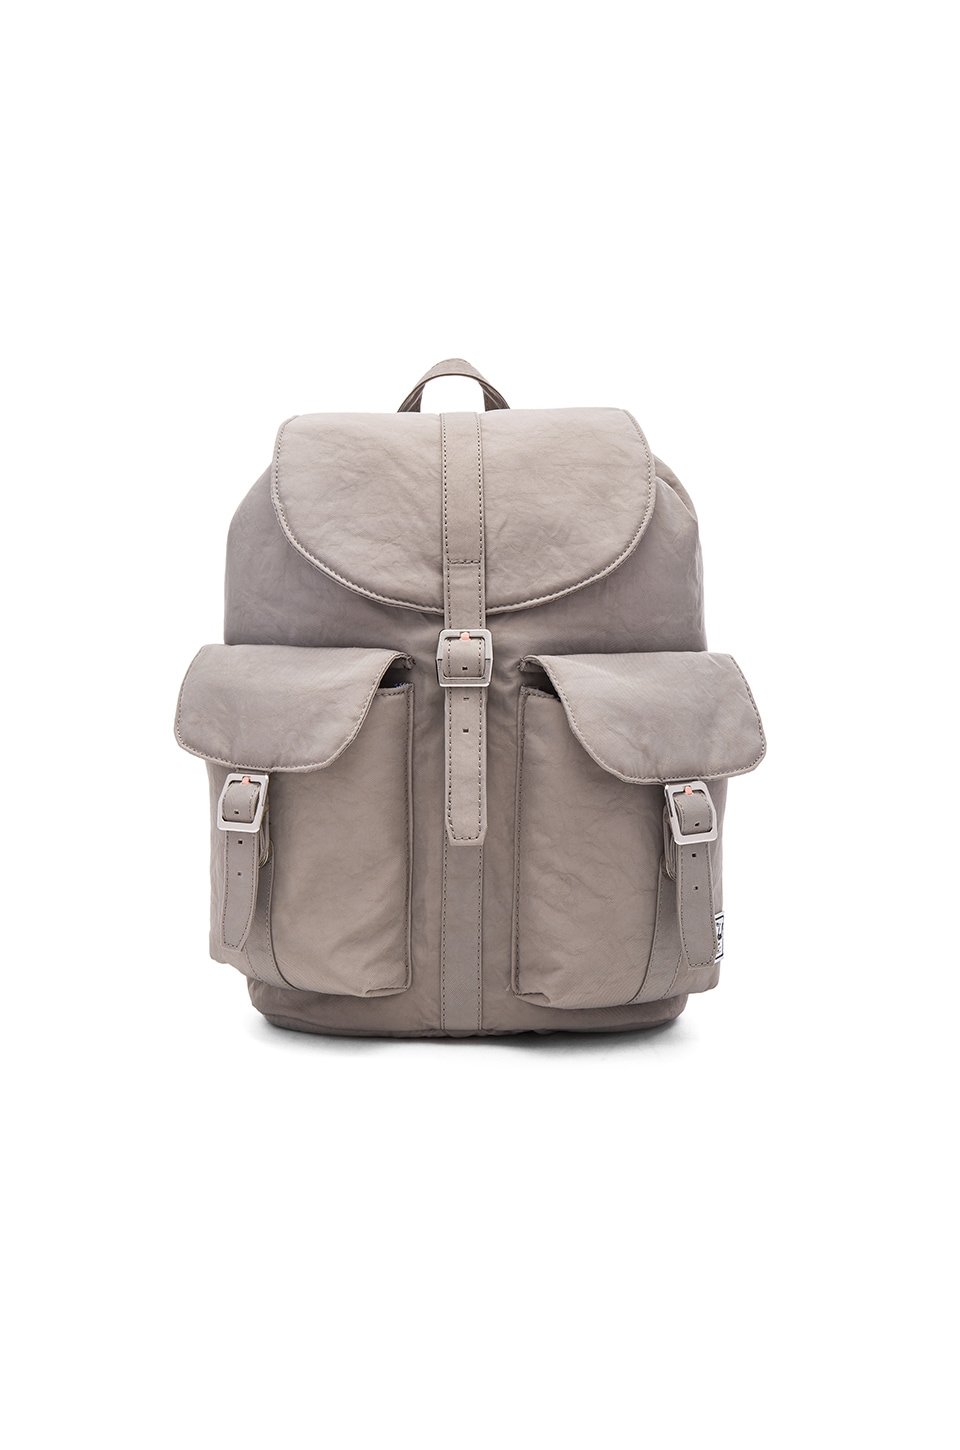 5ad3d8fcd5d Herschel Supply Co. Dawson Backpack in Agate Grey   Veggie Tan Leather